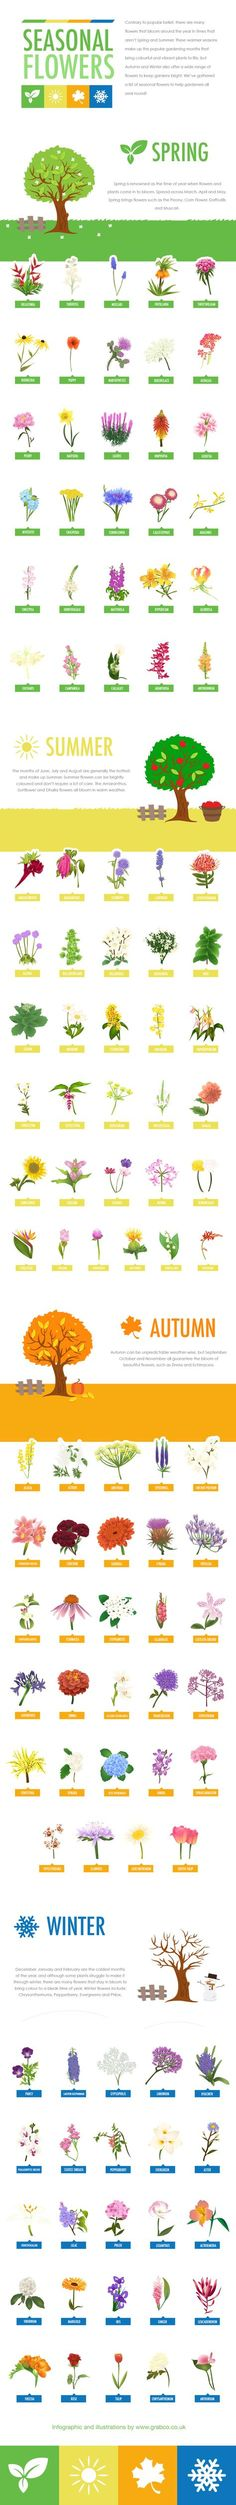 Contrary to popular belief, there are many flowers that bloom around the year in times that aren't Spring and Summer. Summer and Spring are popular gardening seasons and bring colourful and vibrant plants to life, but Autumn and Winter also offer a wide range of flowers to keep gardens bright. We've gathered a list of seasonal flowers to help gardeners all year round and created the infographic below!